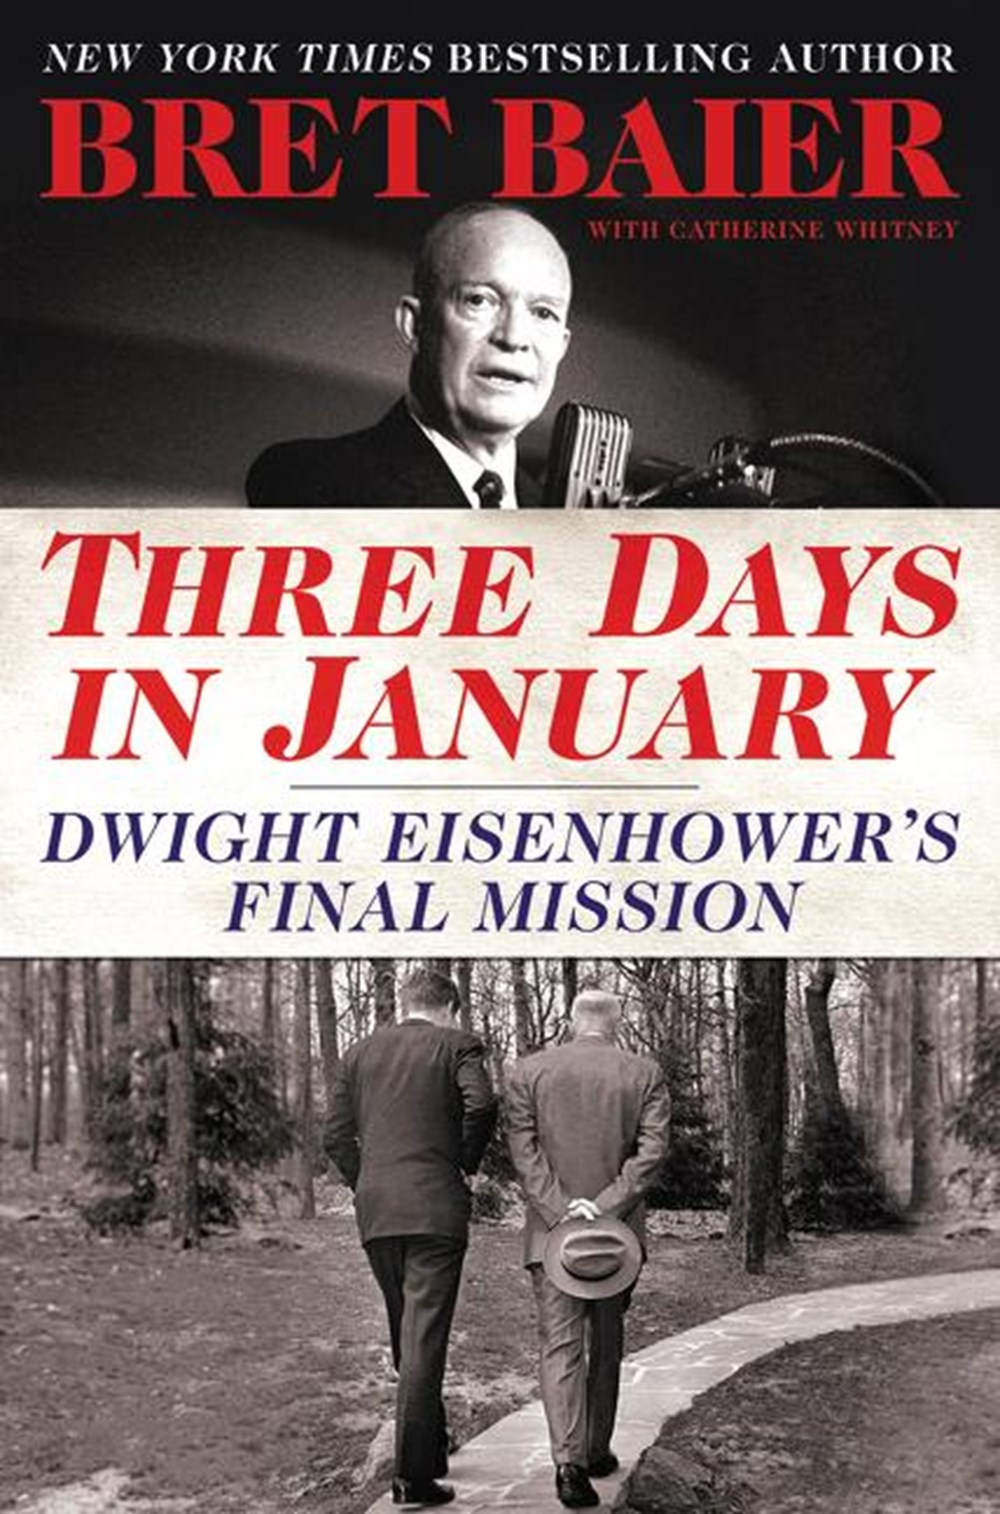 Three Days in January Dwight Eisenhower's Final Mission